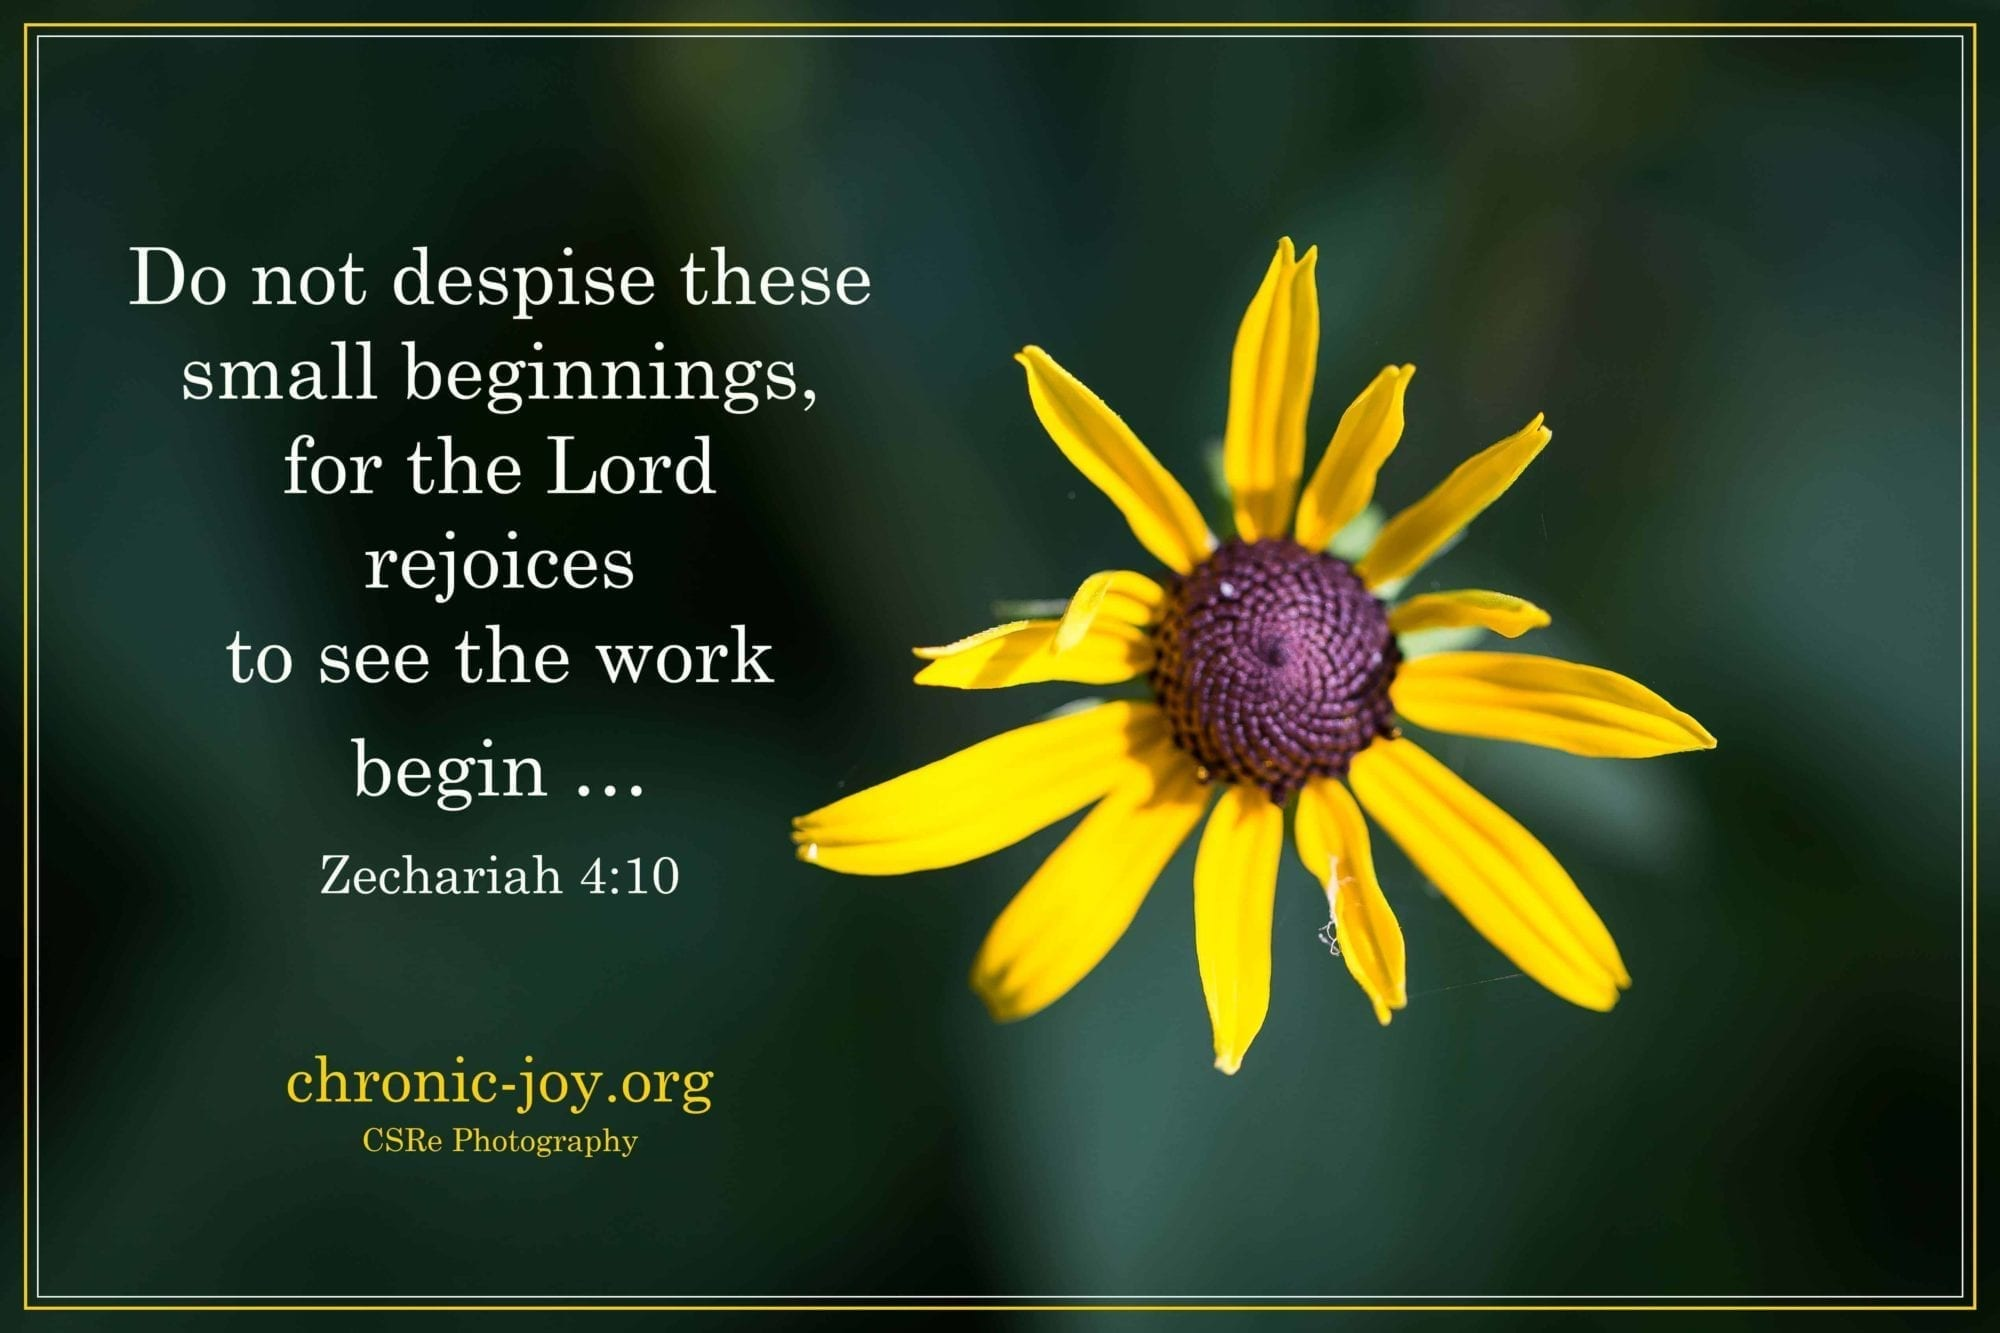 Do not despise small beginnings...